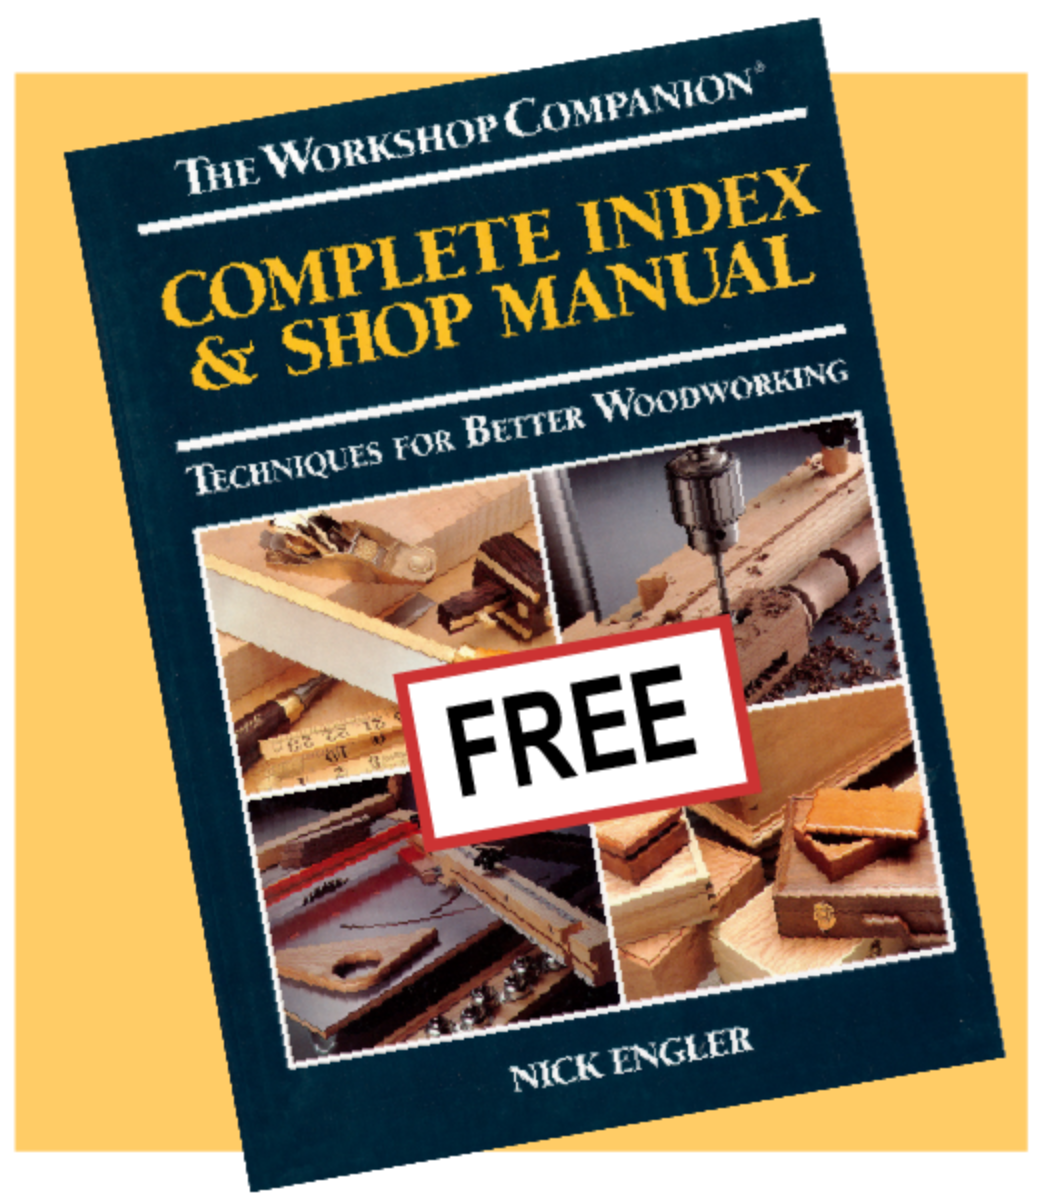 Complete Index & Shop Manual